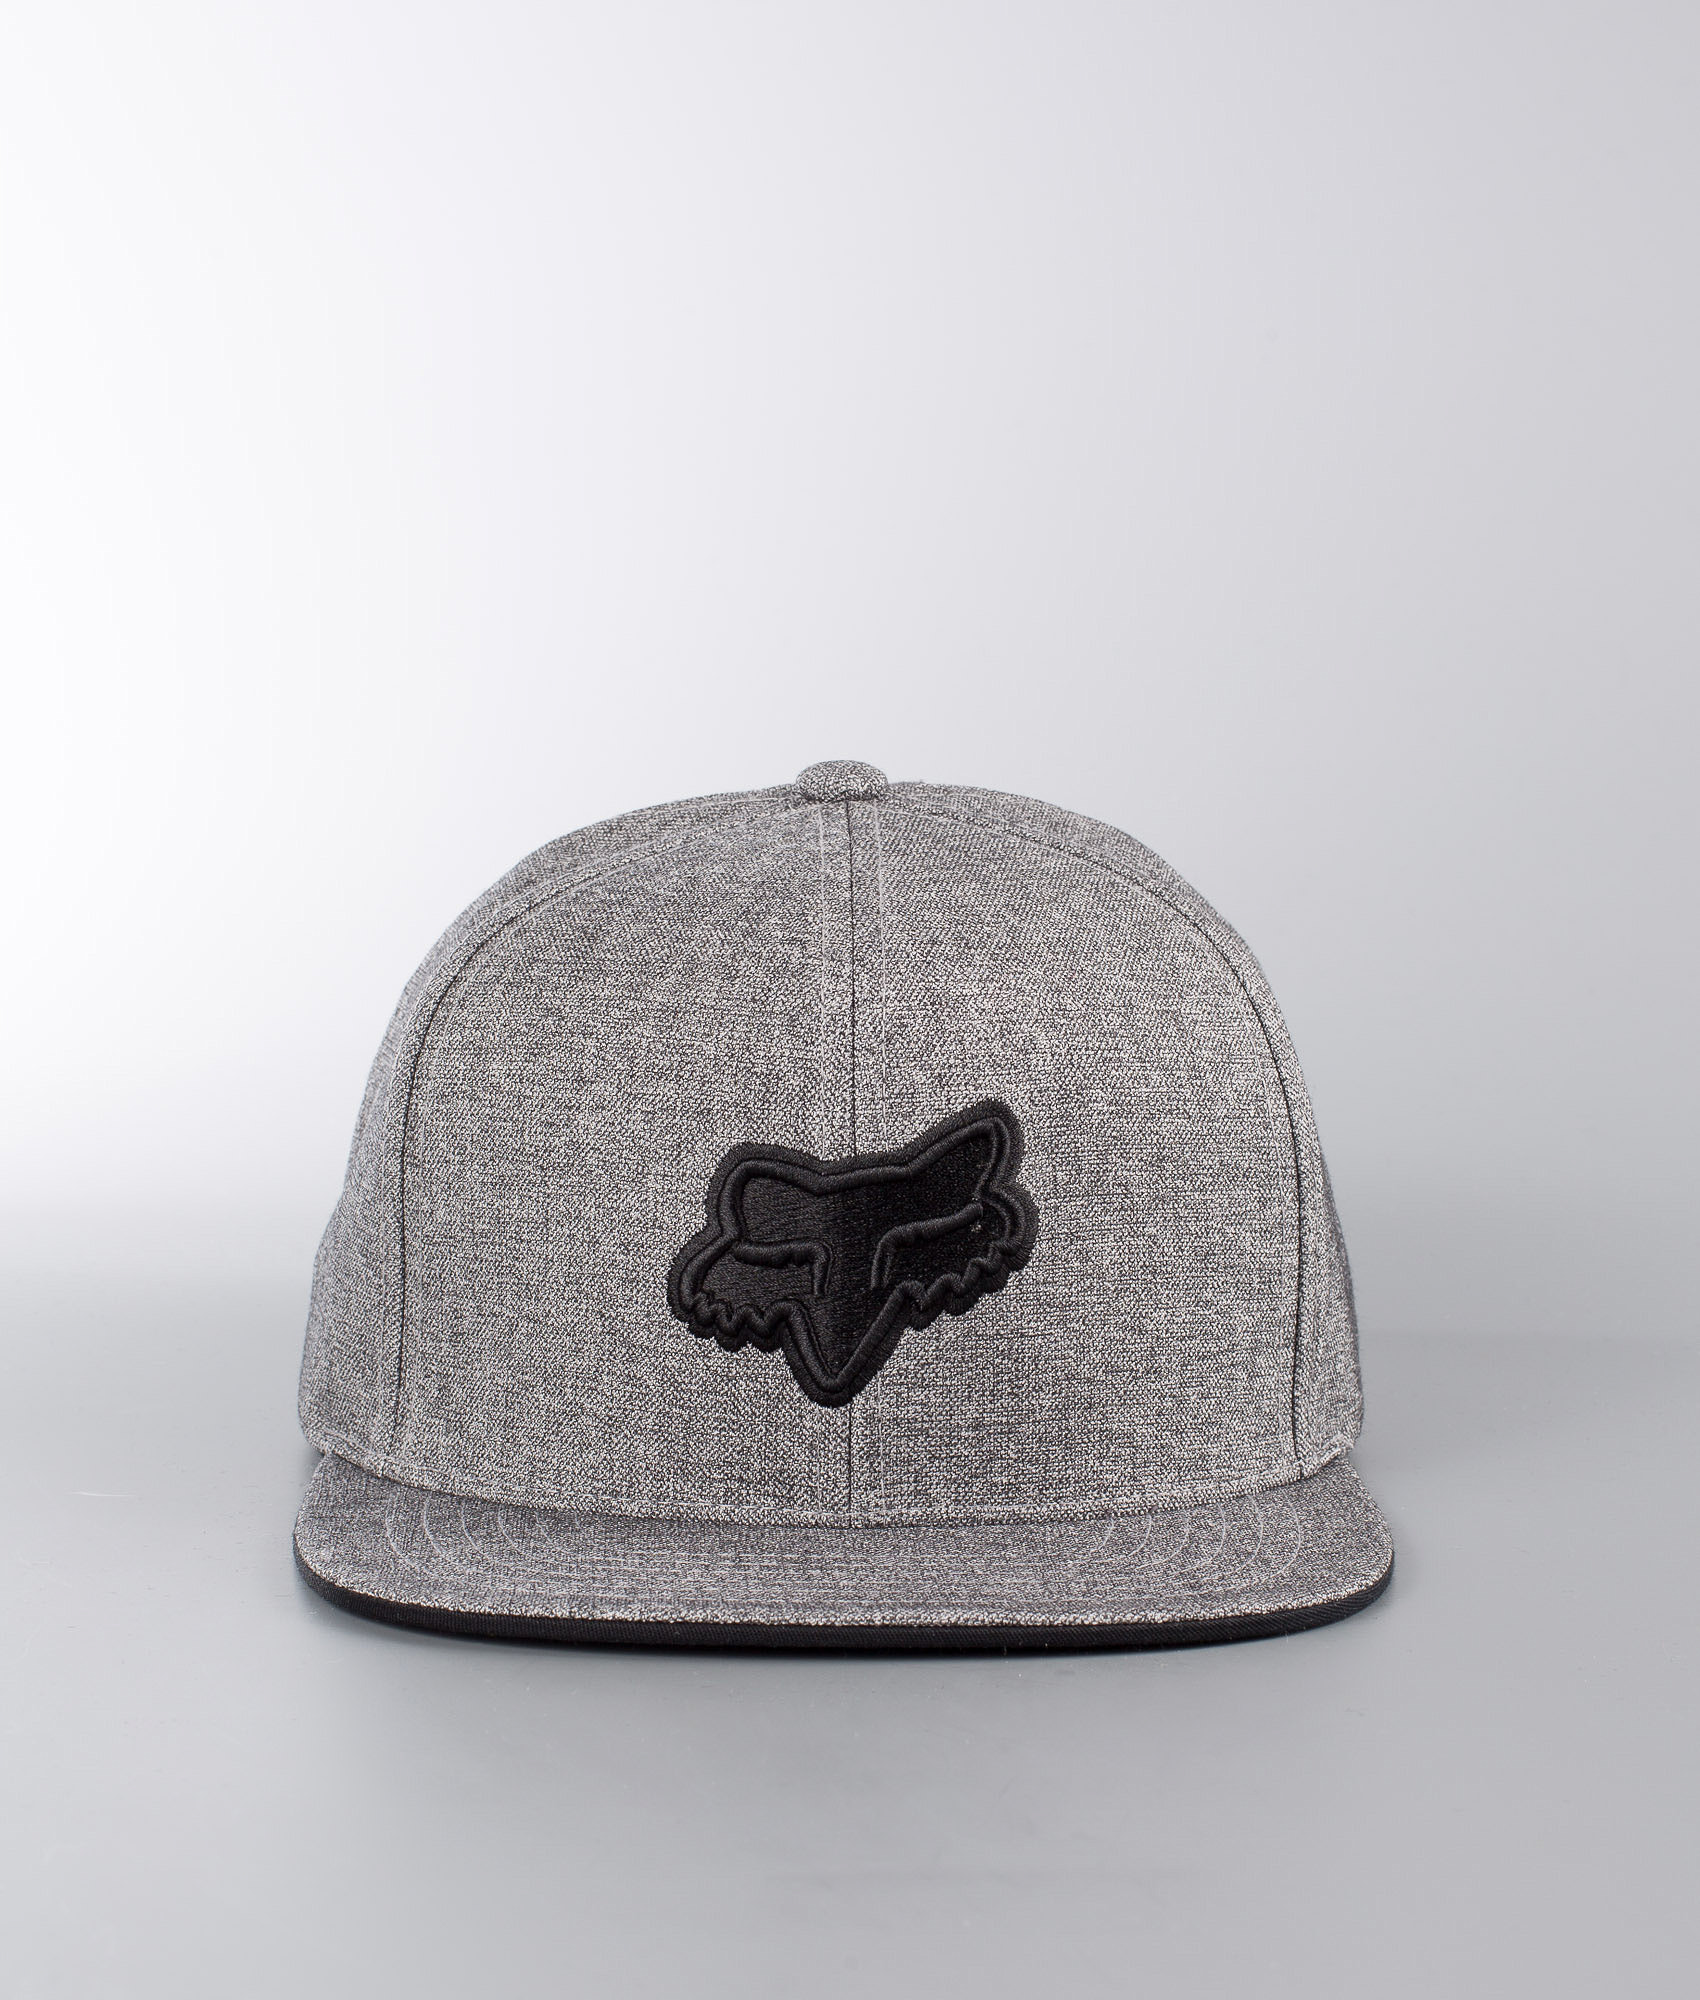 Fox Legacy Snapback Cap Heather Grey - Ridestore.com 6537045e7692